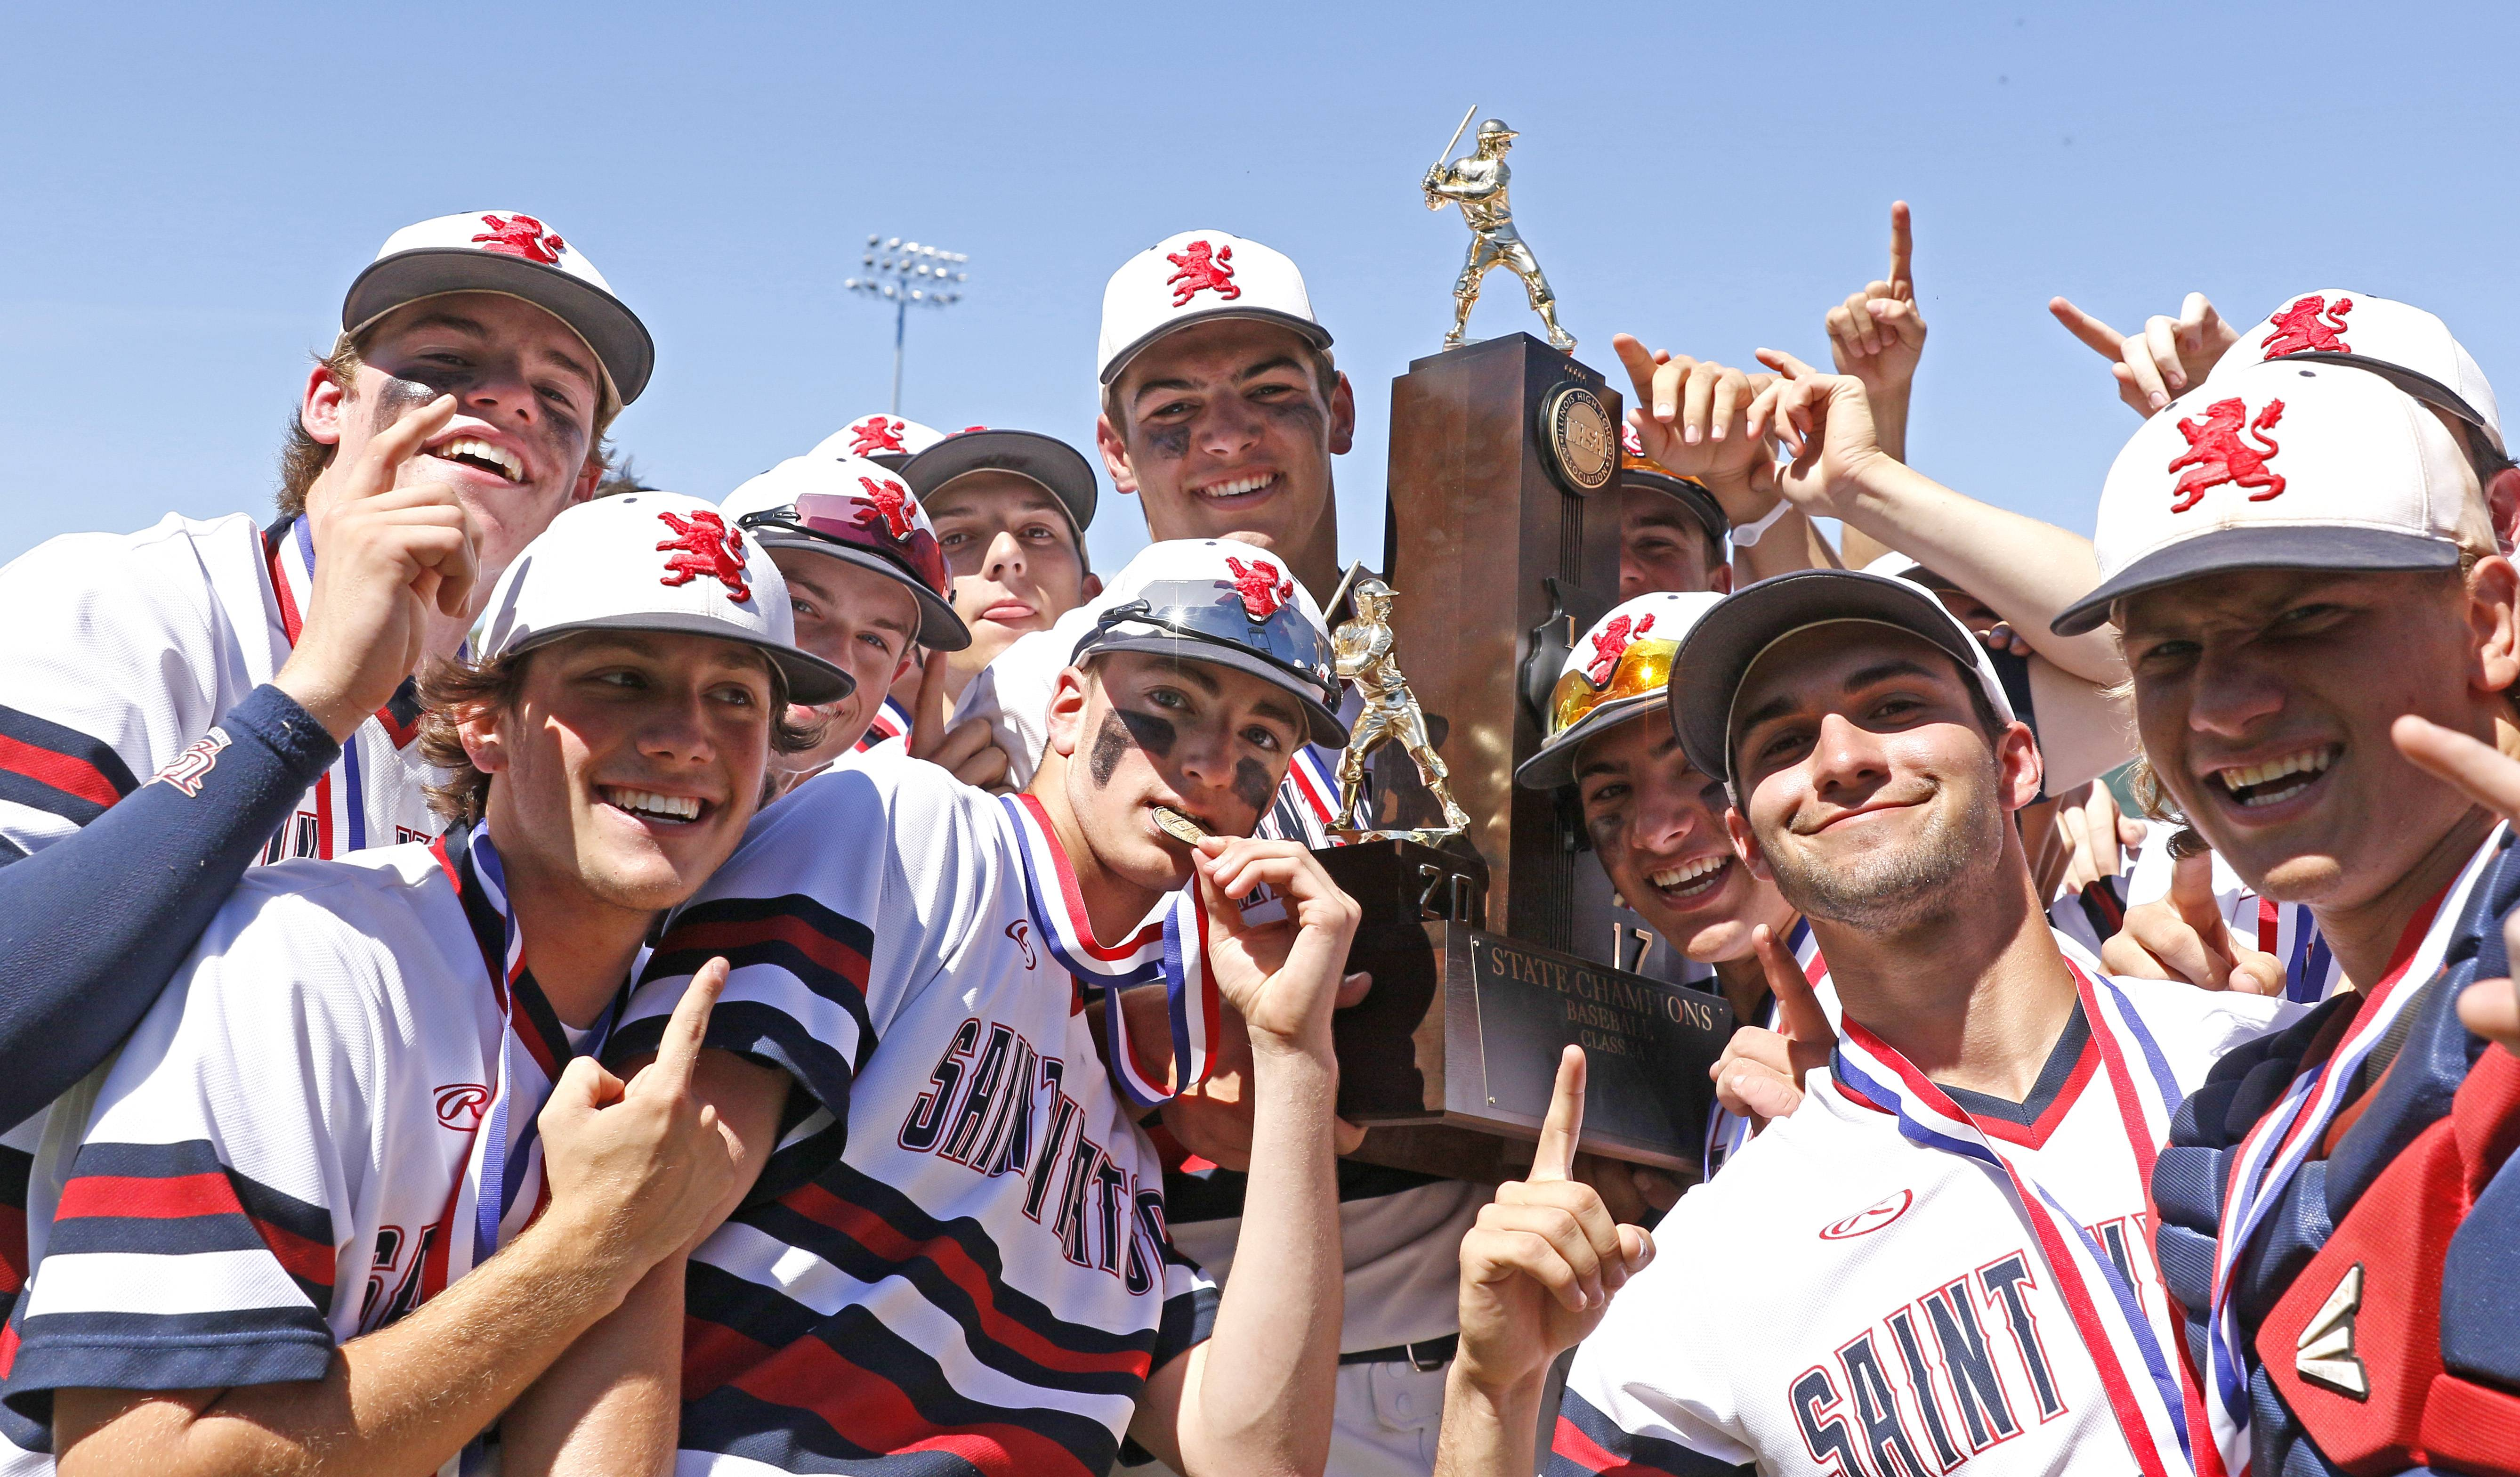 St. Viator's baseball players celebrate their Class 3A state championship after a  10-8 win over Marian Catholic on Saturday in Joliet.